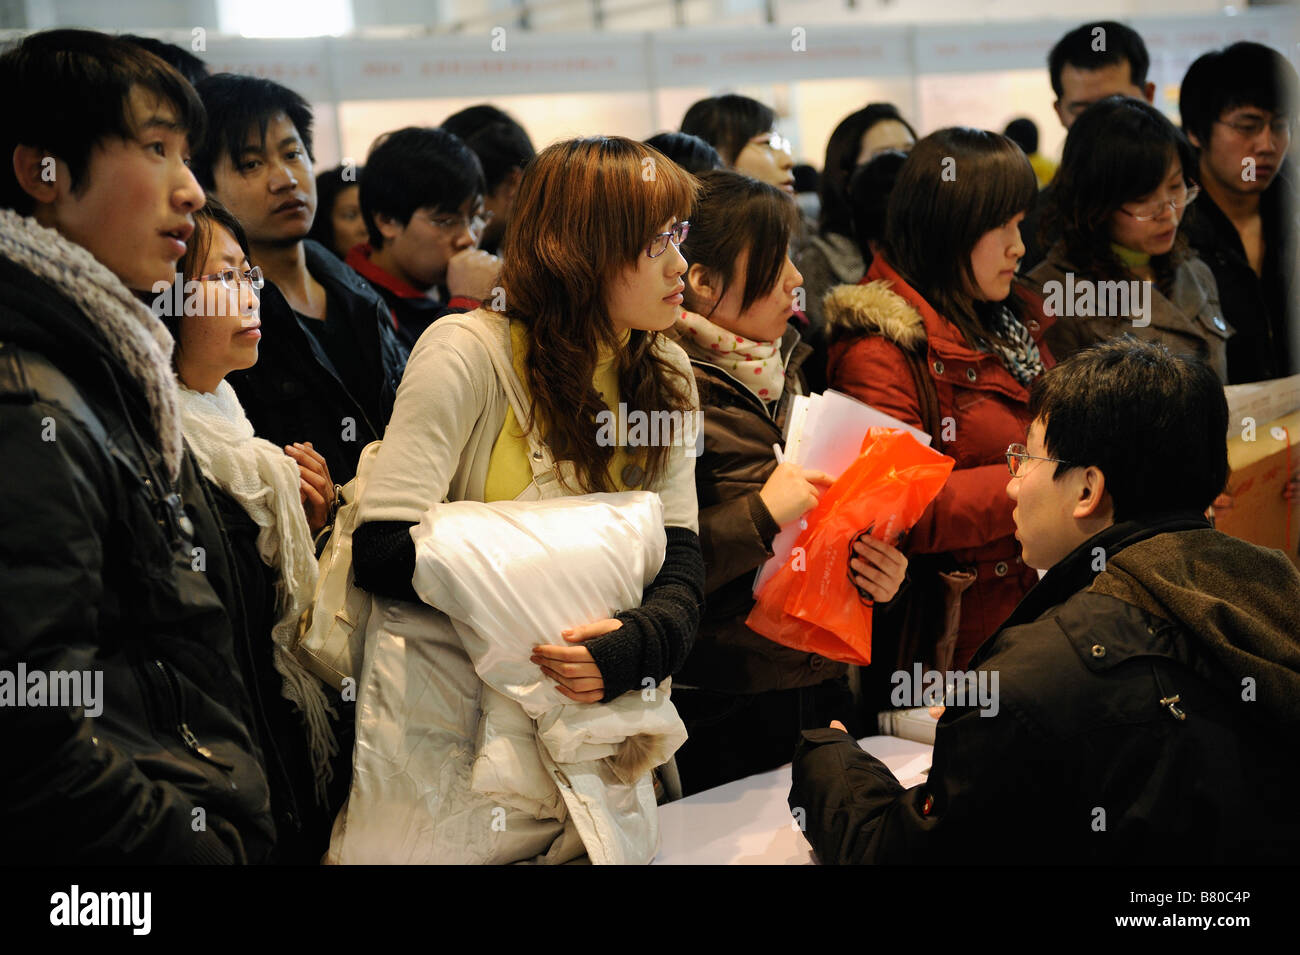 Job seekers try to find a work at a job fair in Beijing on February 8, 2009 - Stock Image